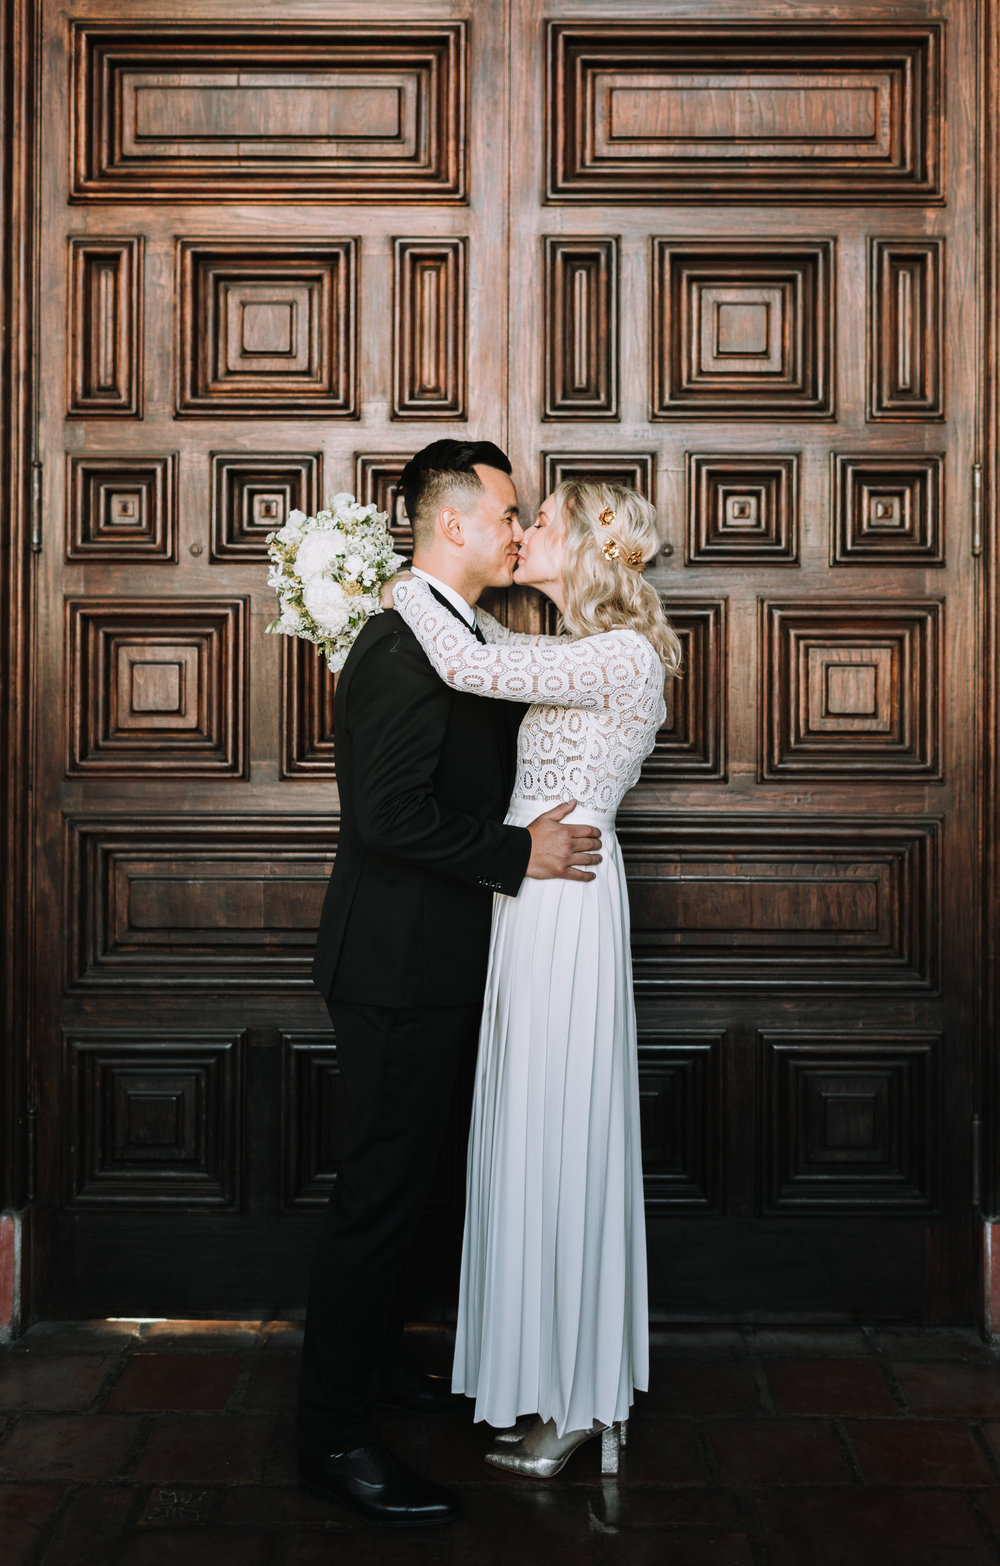 Jaime and Michael Santa Barbara Courthouse Mural Room Wedding Getting ready at hotel californian in sb with el paseo reception to follow vanessa todd photographer